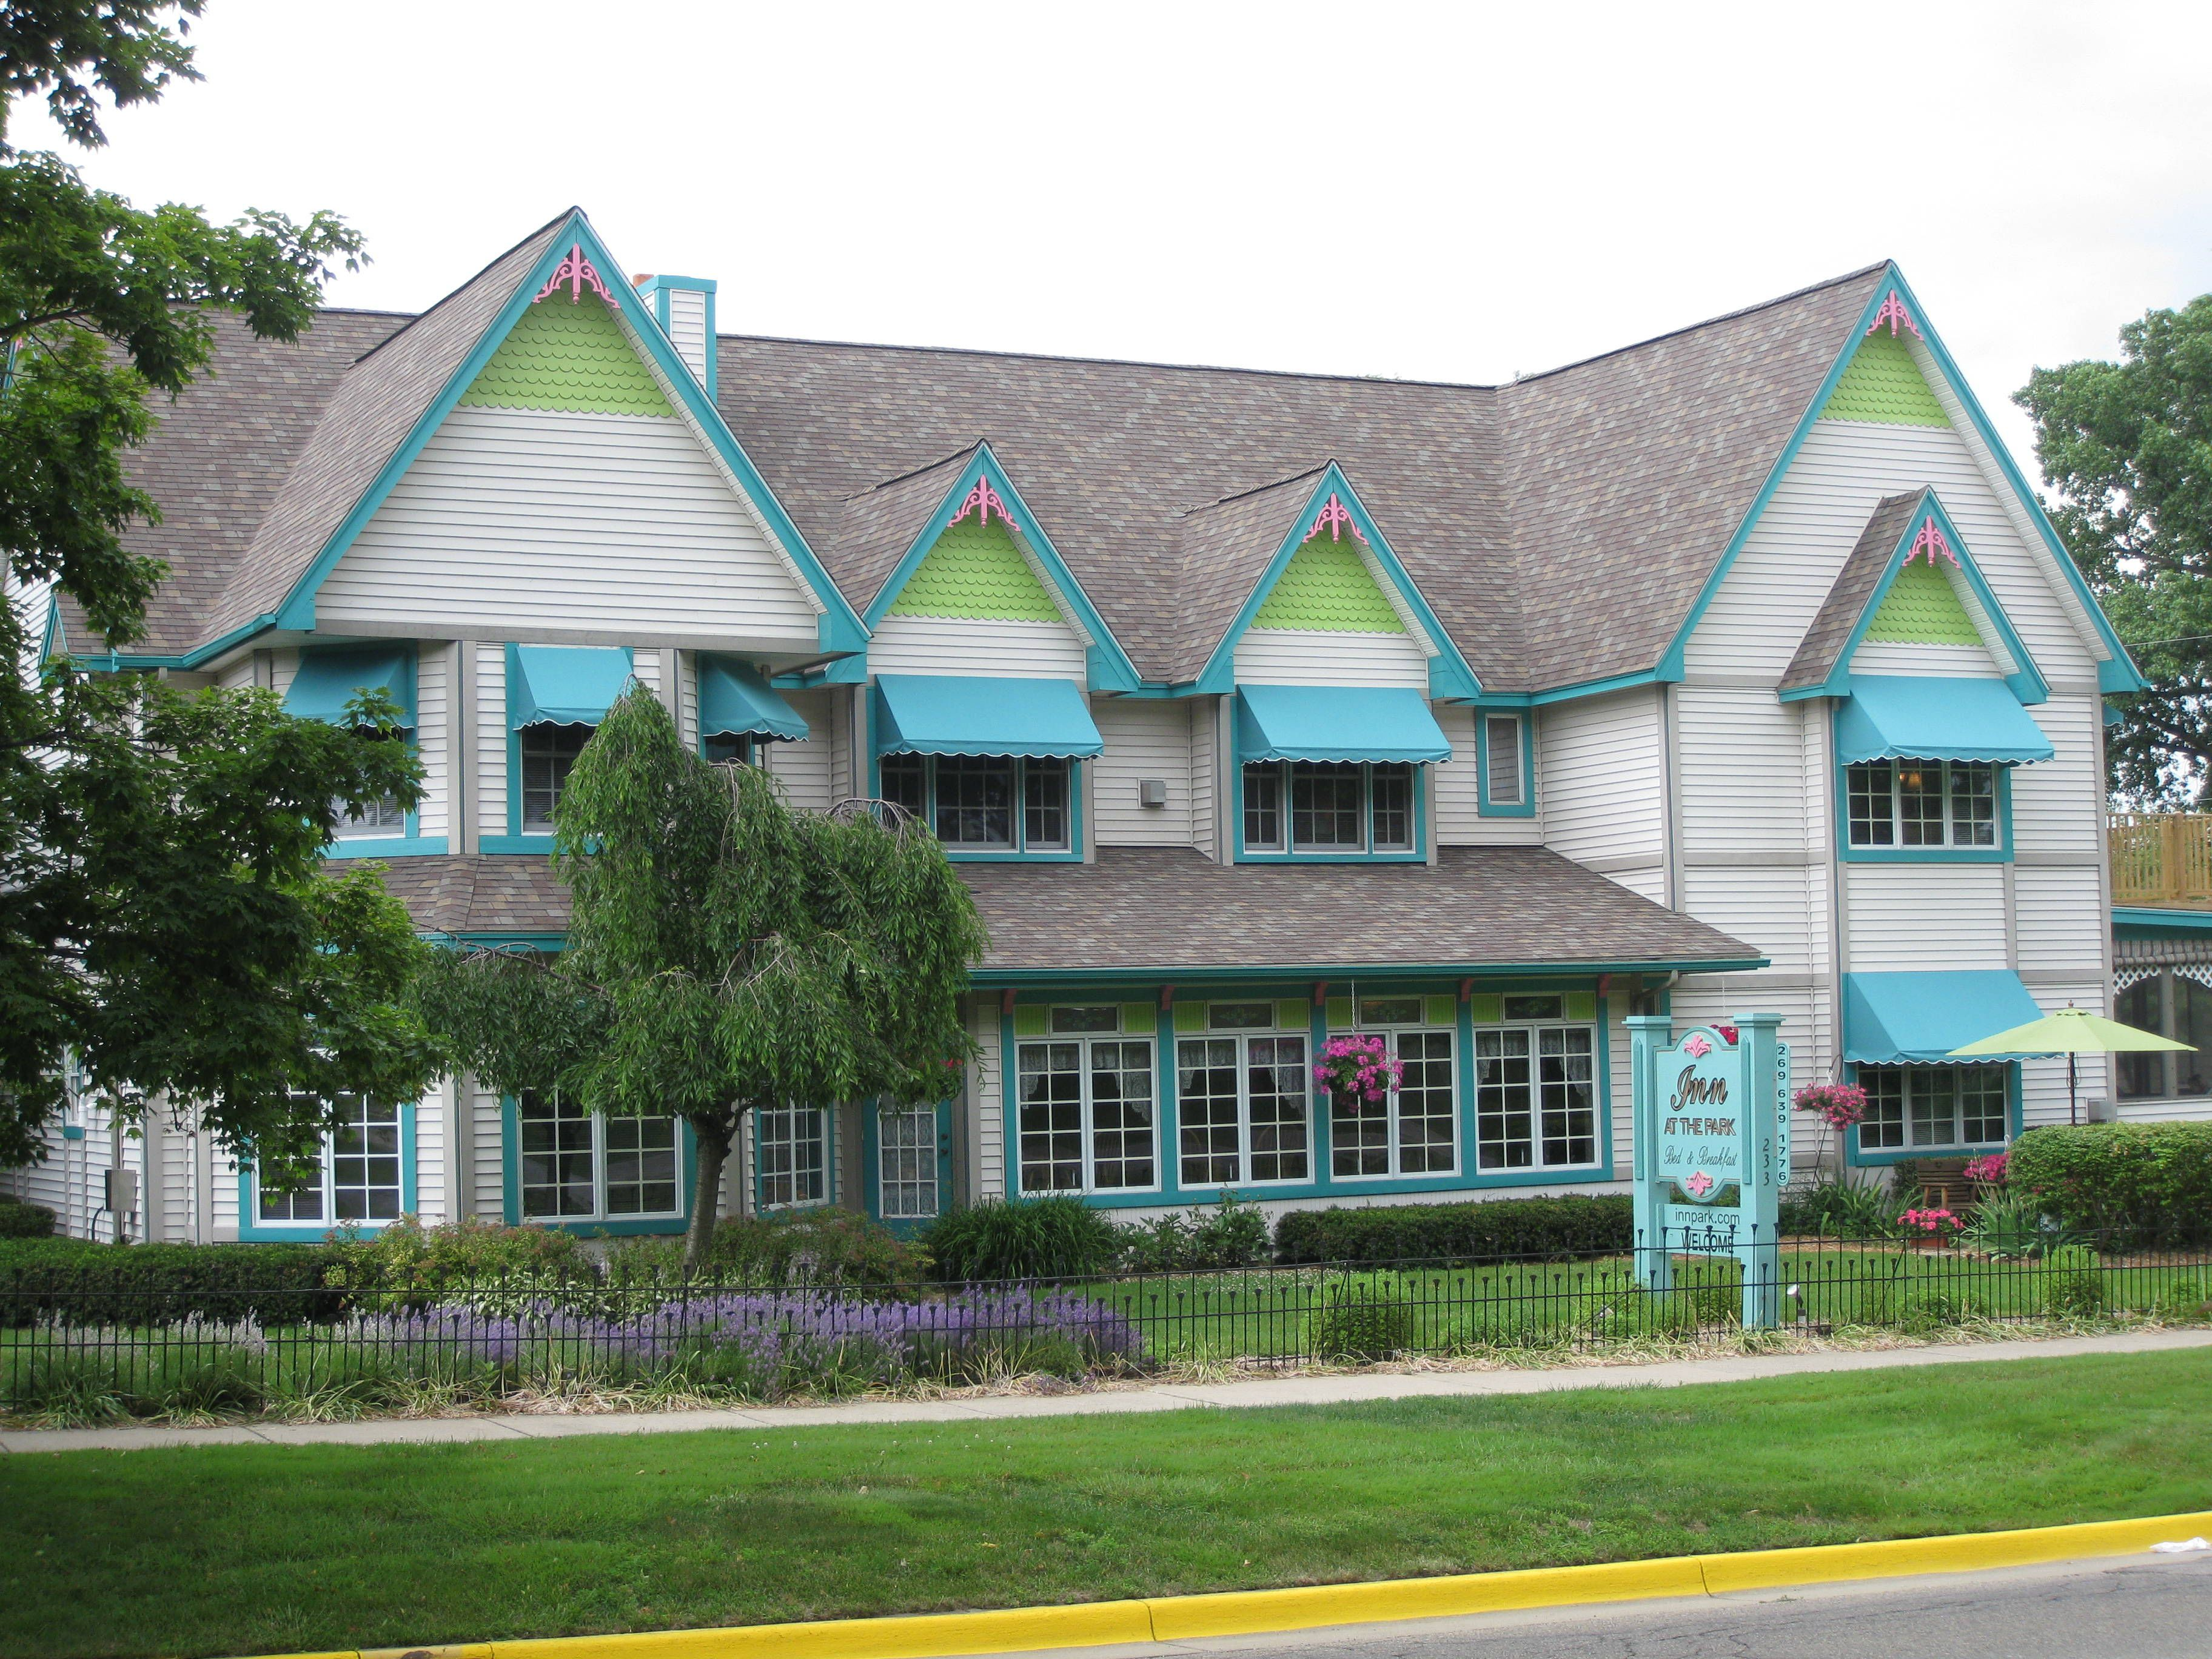 newly constructed multi-gabled dwelling, turquoise awnings, built in the Victorian style